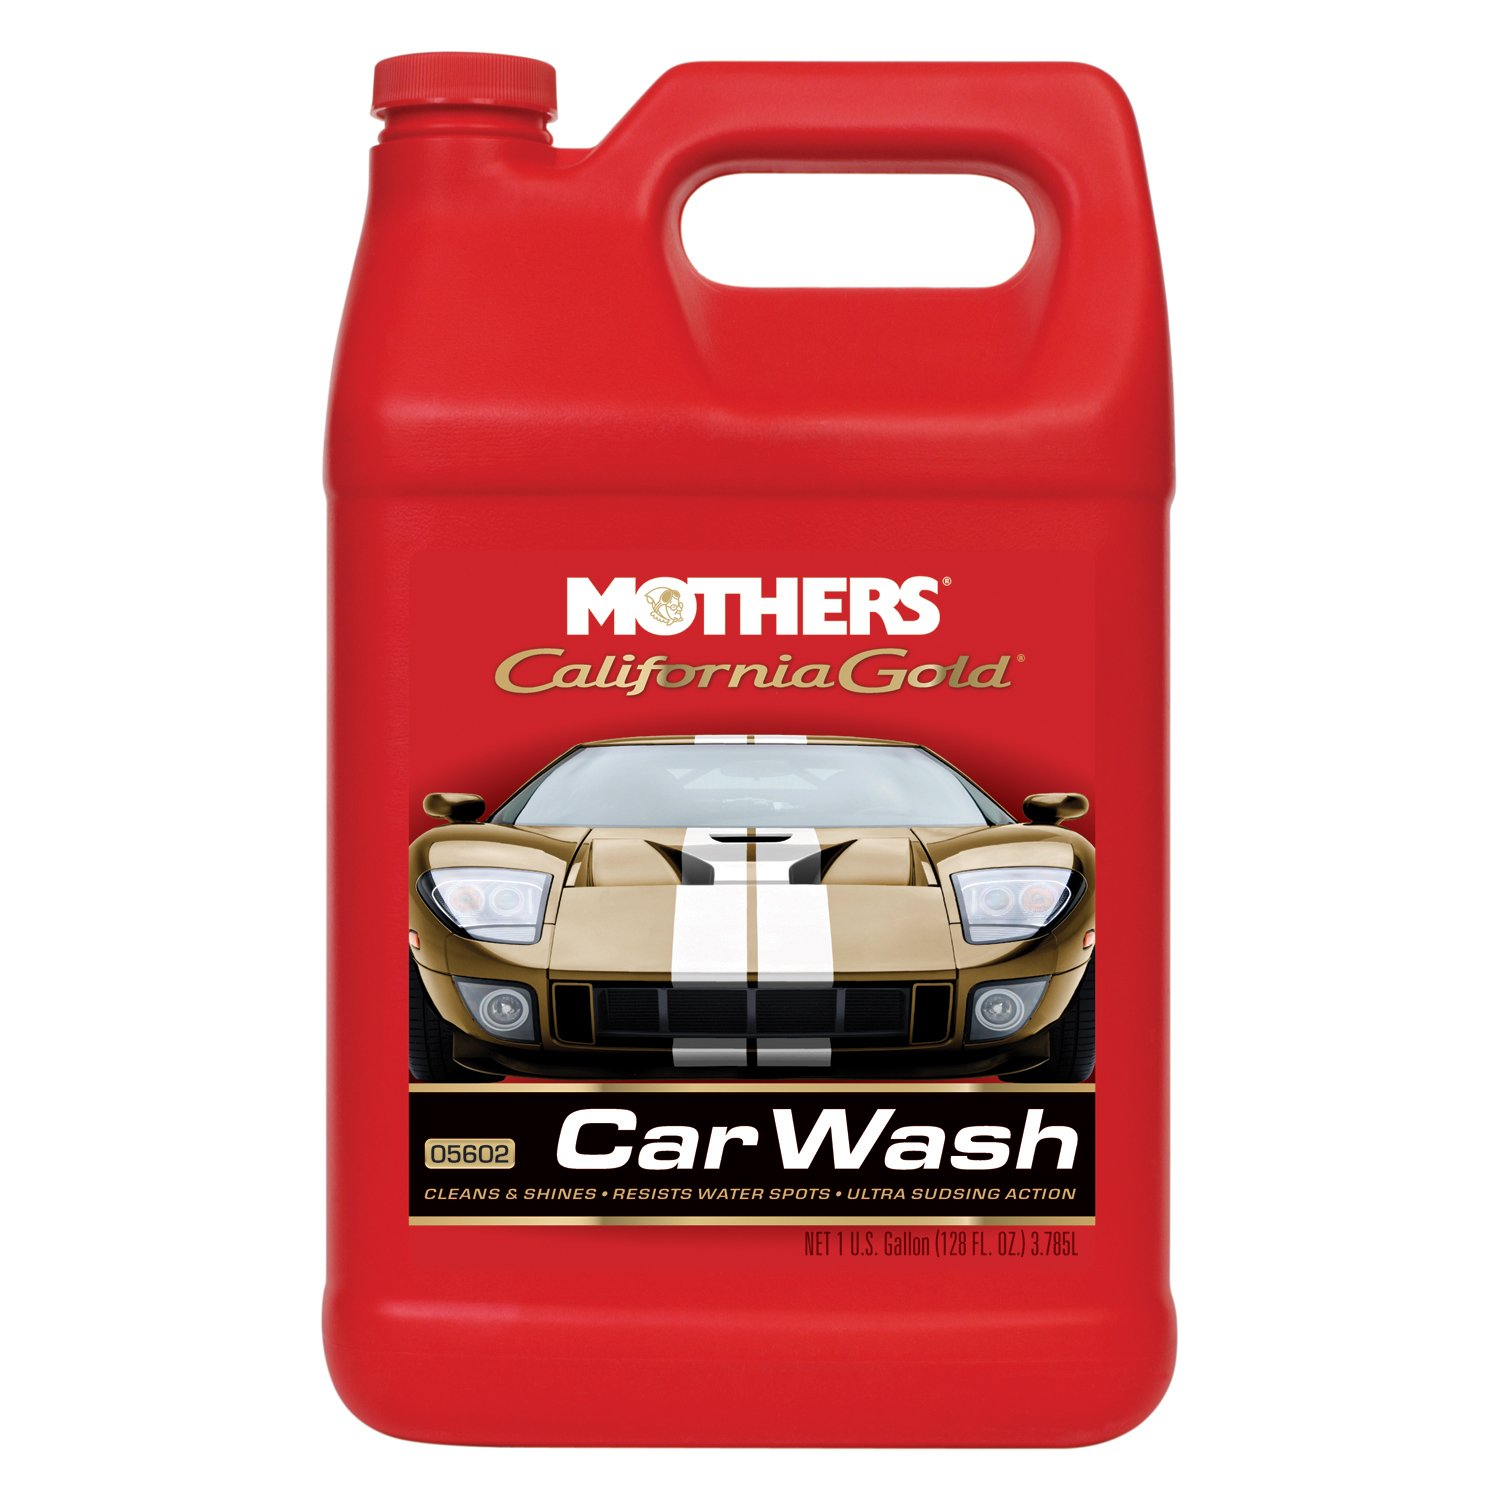 Mothers 05602-4 California Gold Car Wash - 1 Gallon, (Pack of 4)